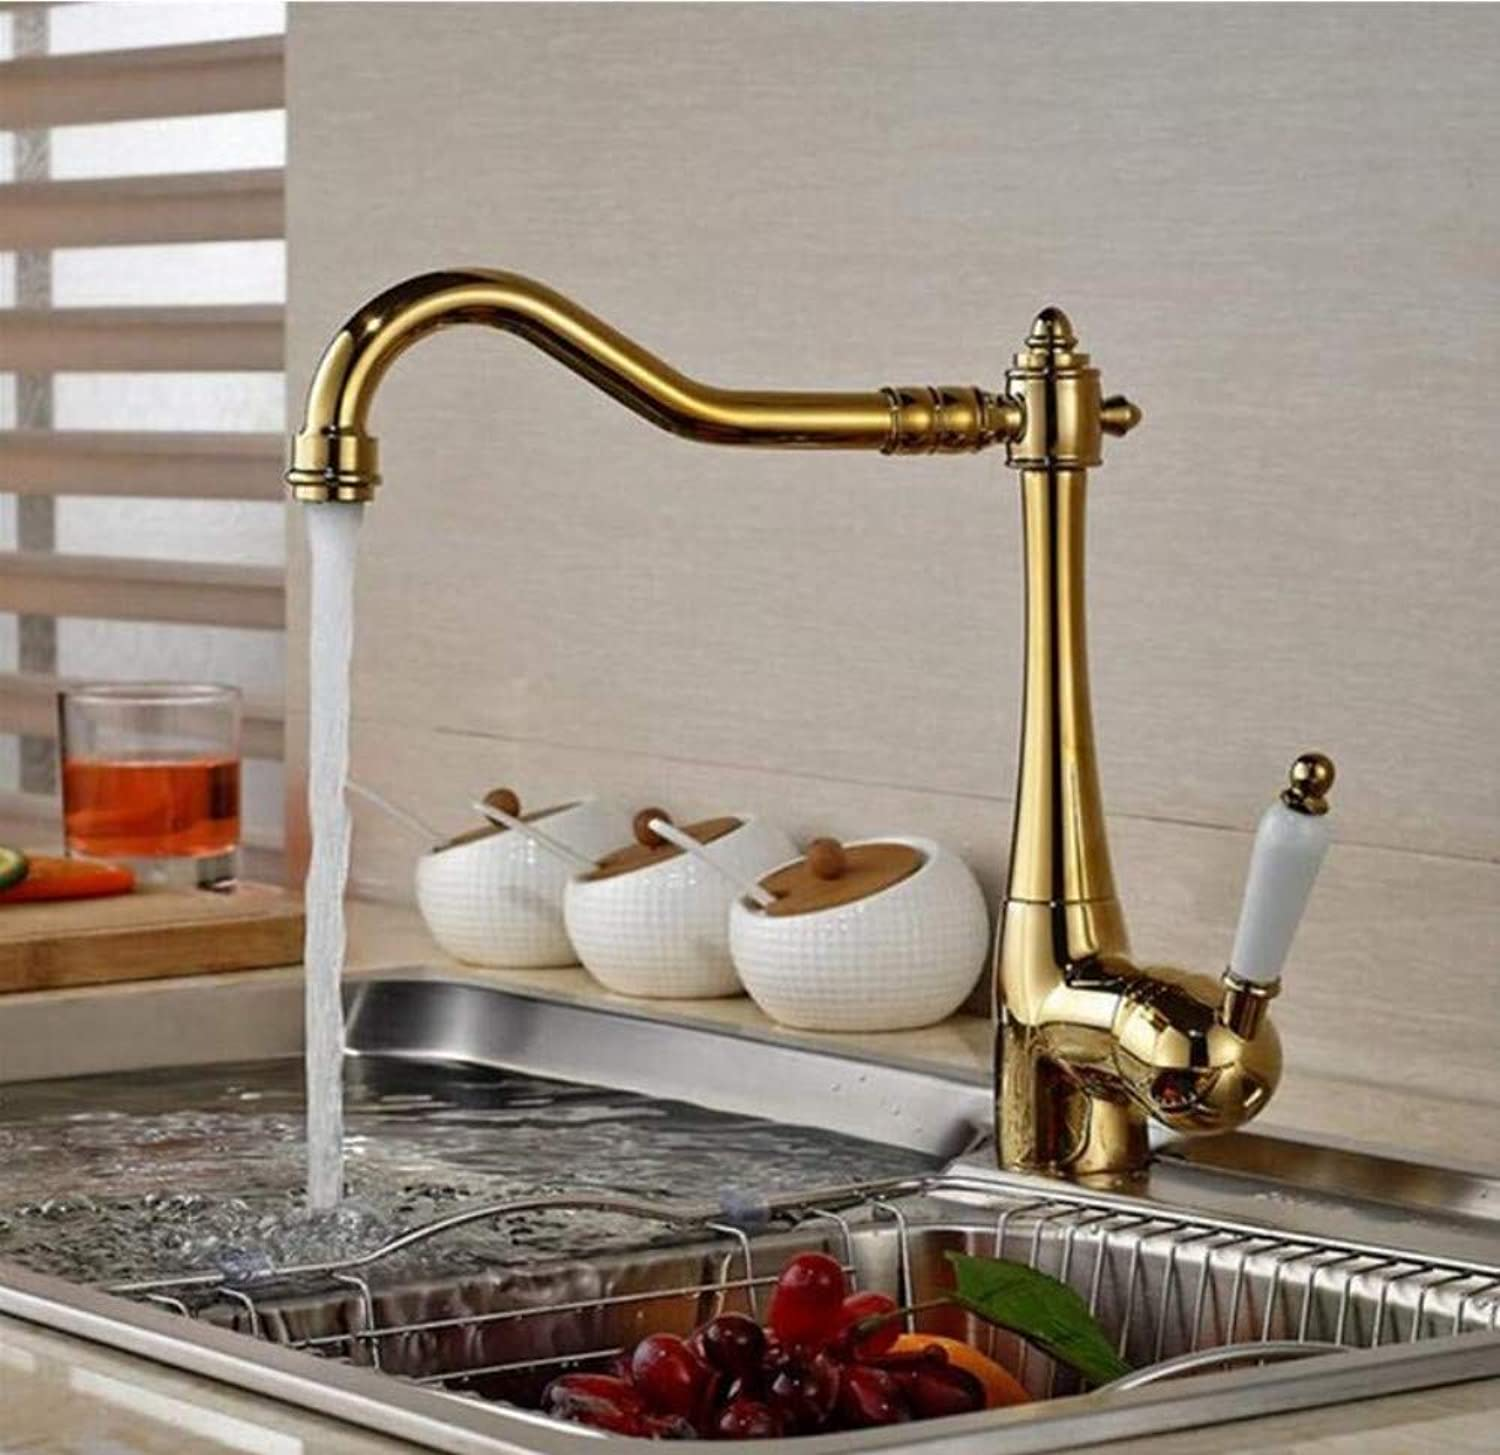 Brass Chrome Hot and Cold Water Faucet golden Nickel Chrome Antique Brass Ceramic Single Handle Kitchen Sink Faucet Wash Basin Water Mixer Tap